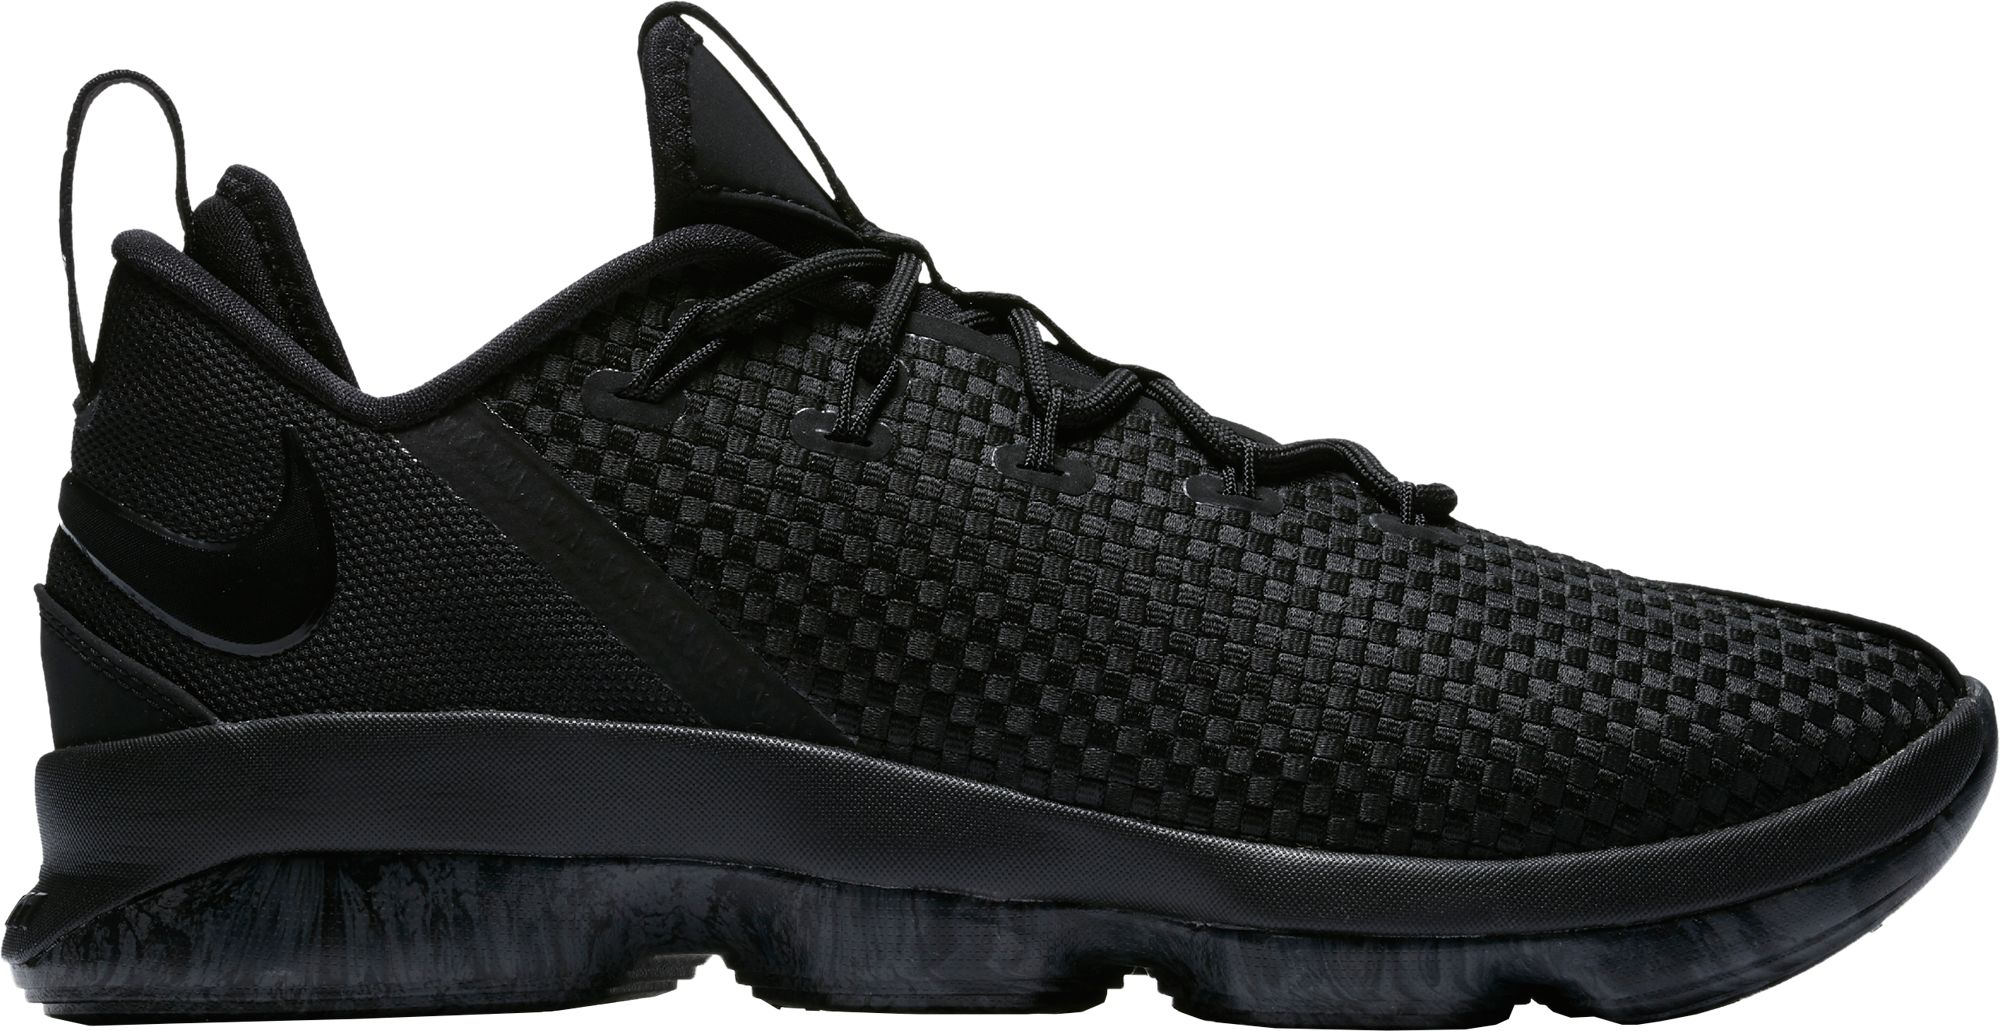 online retailer 55f84 b1a21 nike black football shoes lebrons 14 shoes